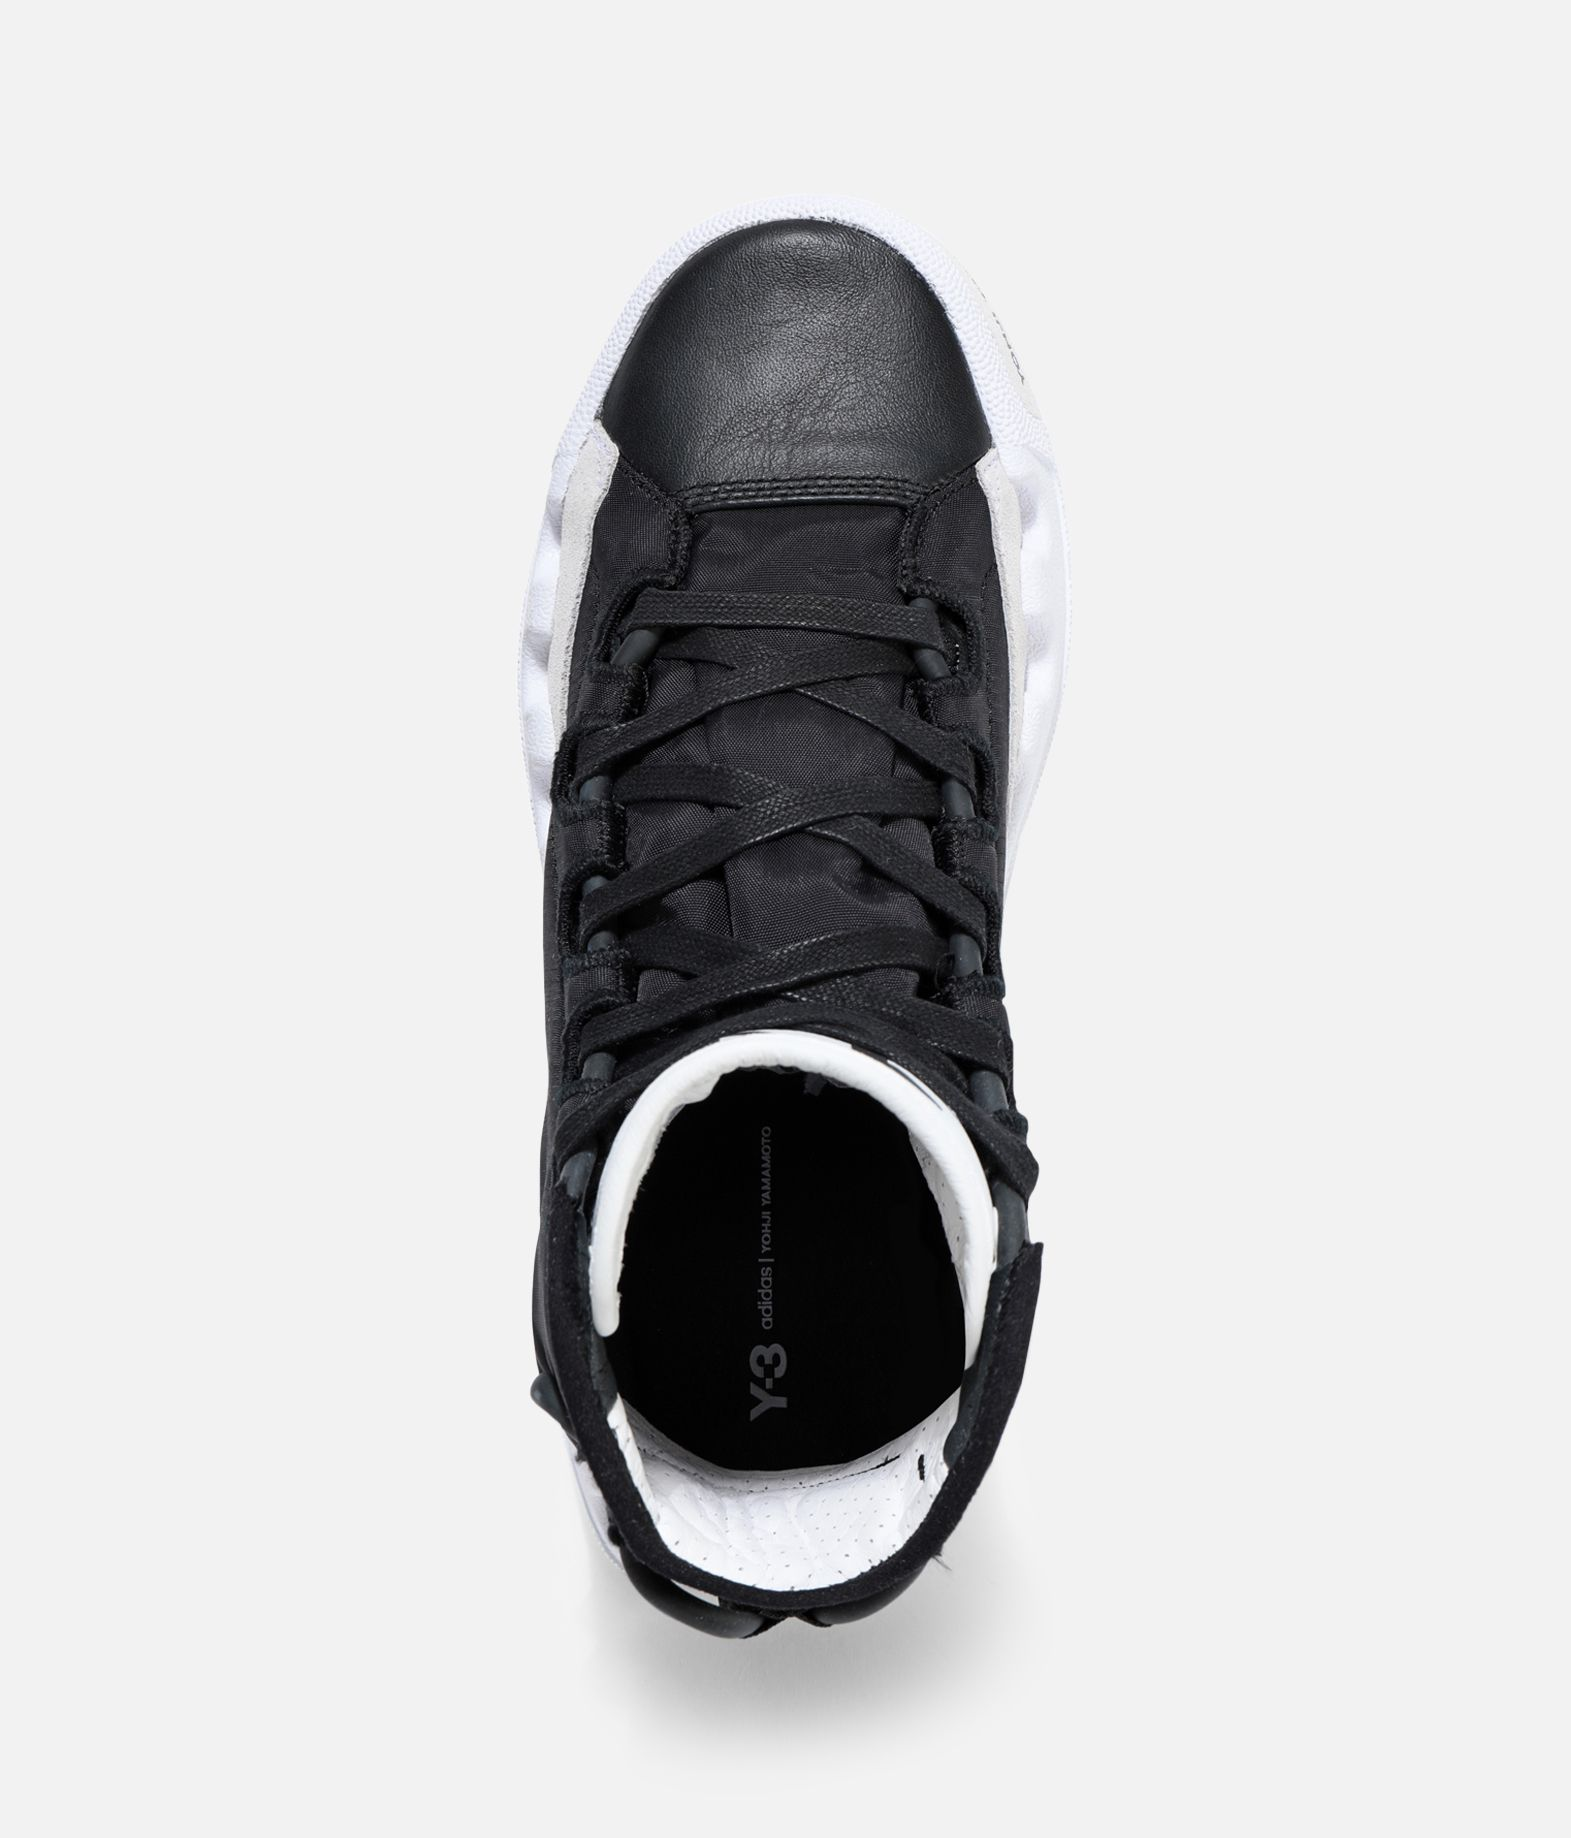 Y-3 Y-3 Kasabaru High-top sneakers E c